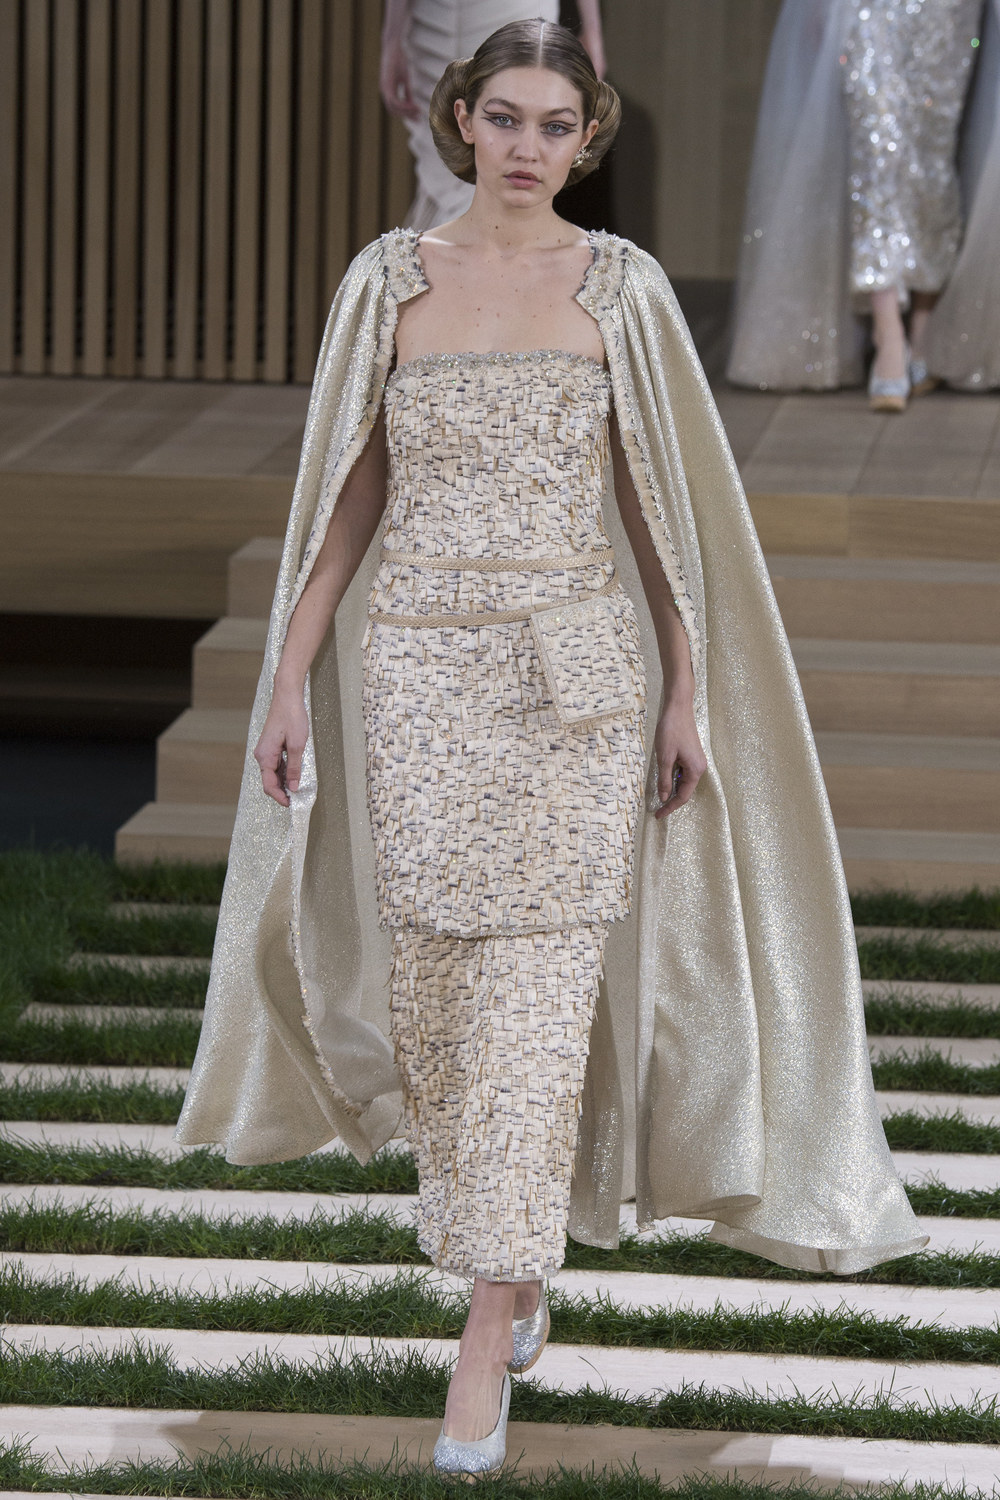 Chanel-Couture-Spring-2016-Paris-Fashion-Week-20.jpg